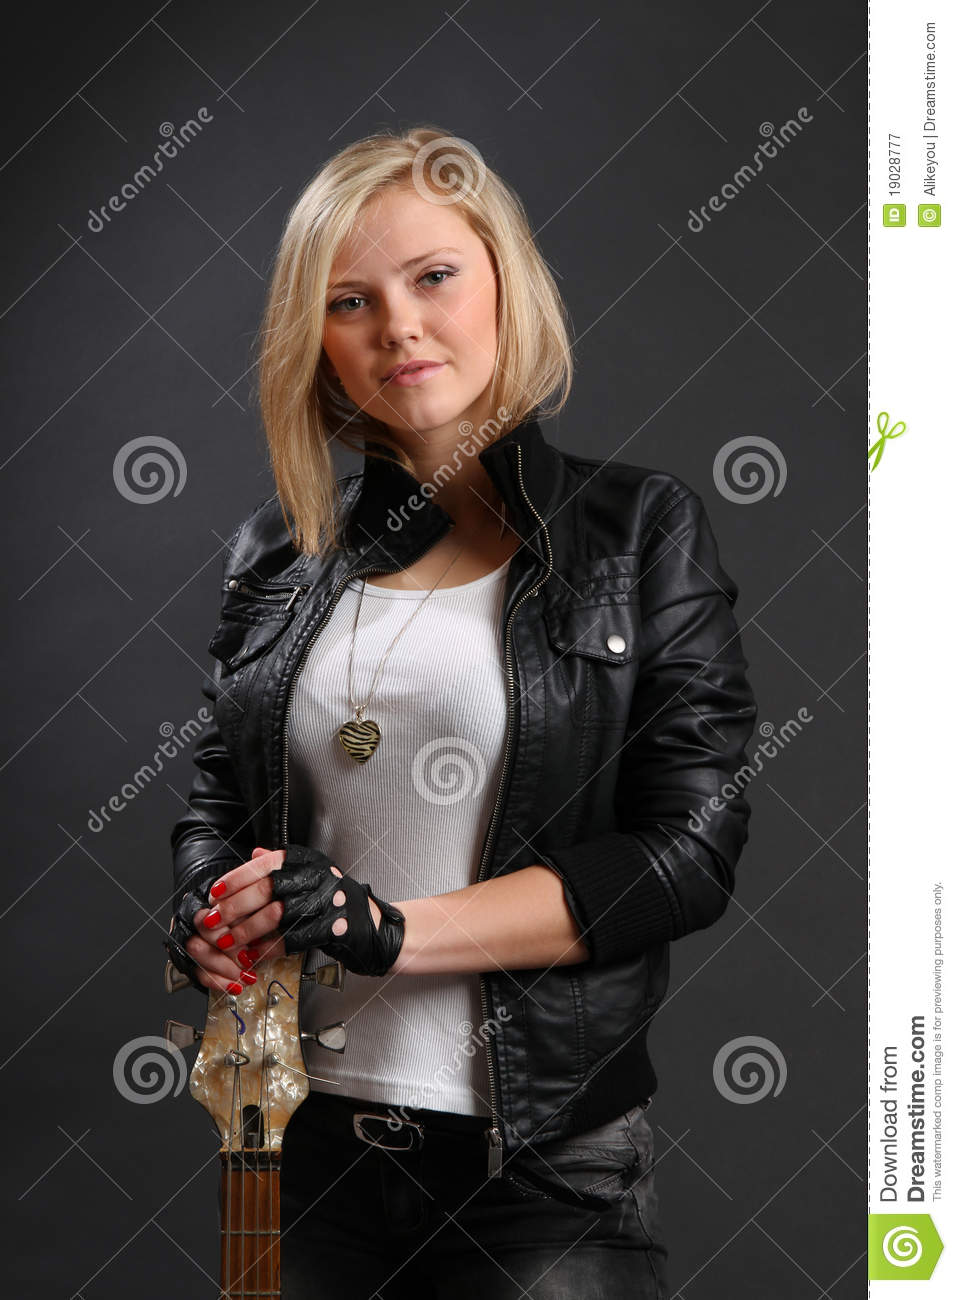 Blond Girl In Leather Jacket With Guitar Royalty Free Stock